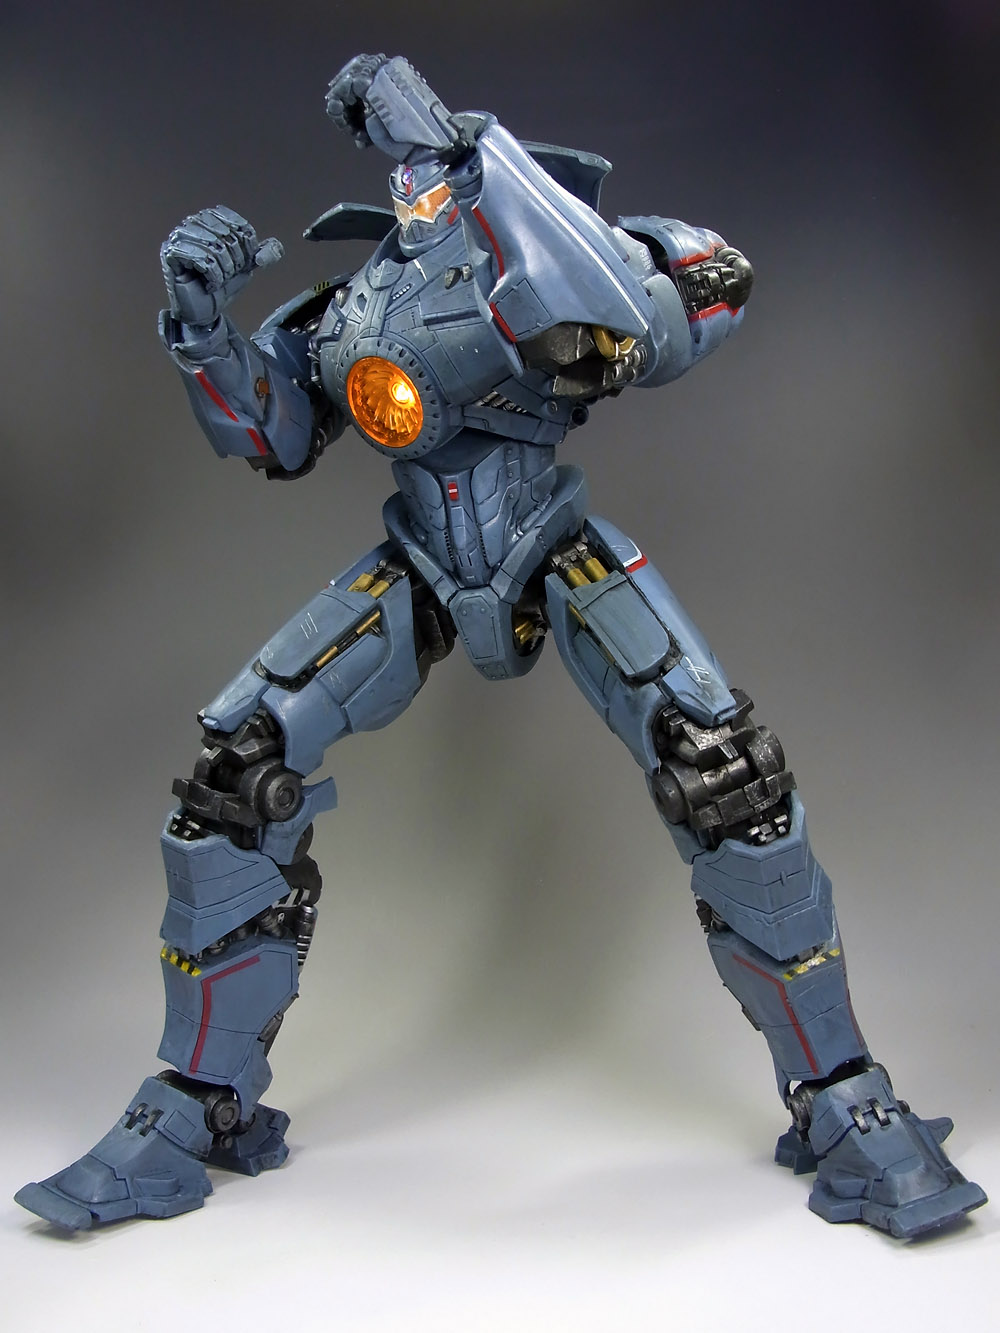 NECA 18 Inch Gipsy Danger In Hand Images - Tokunation Pacific Rim Gipsy Danger